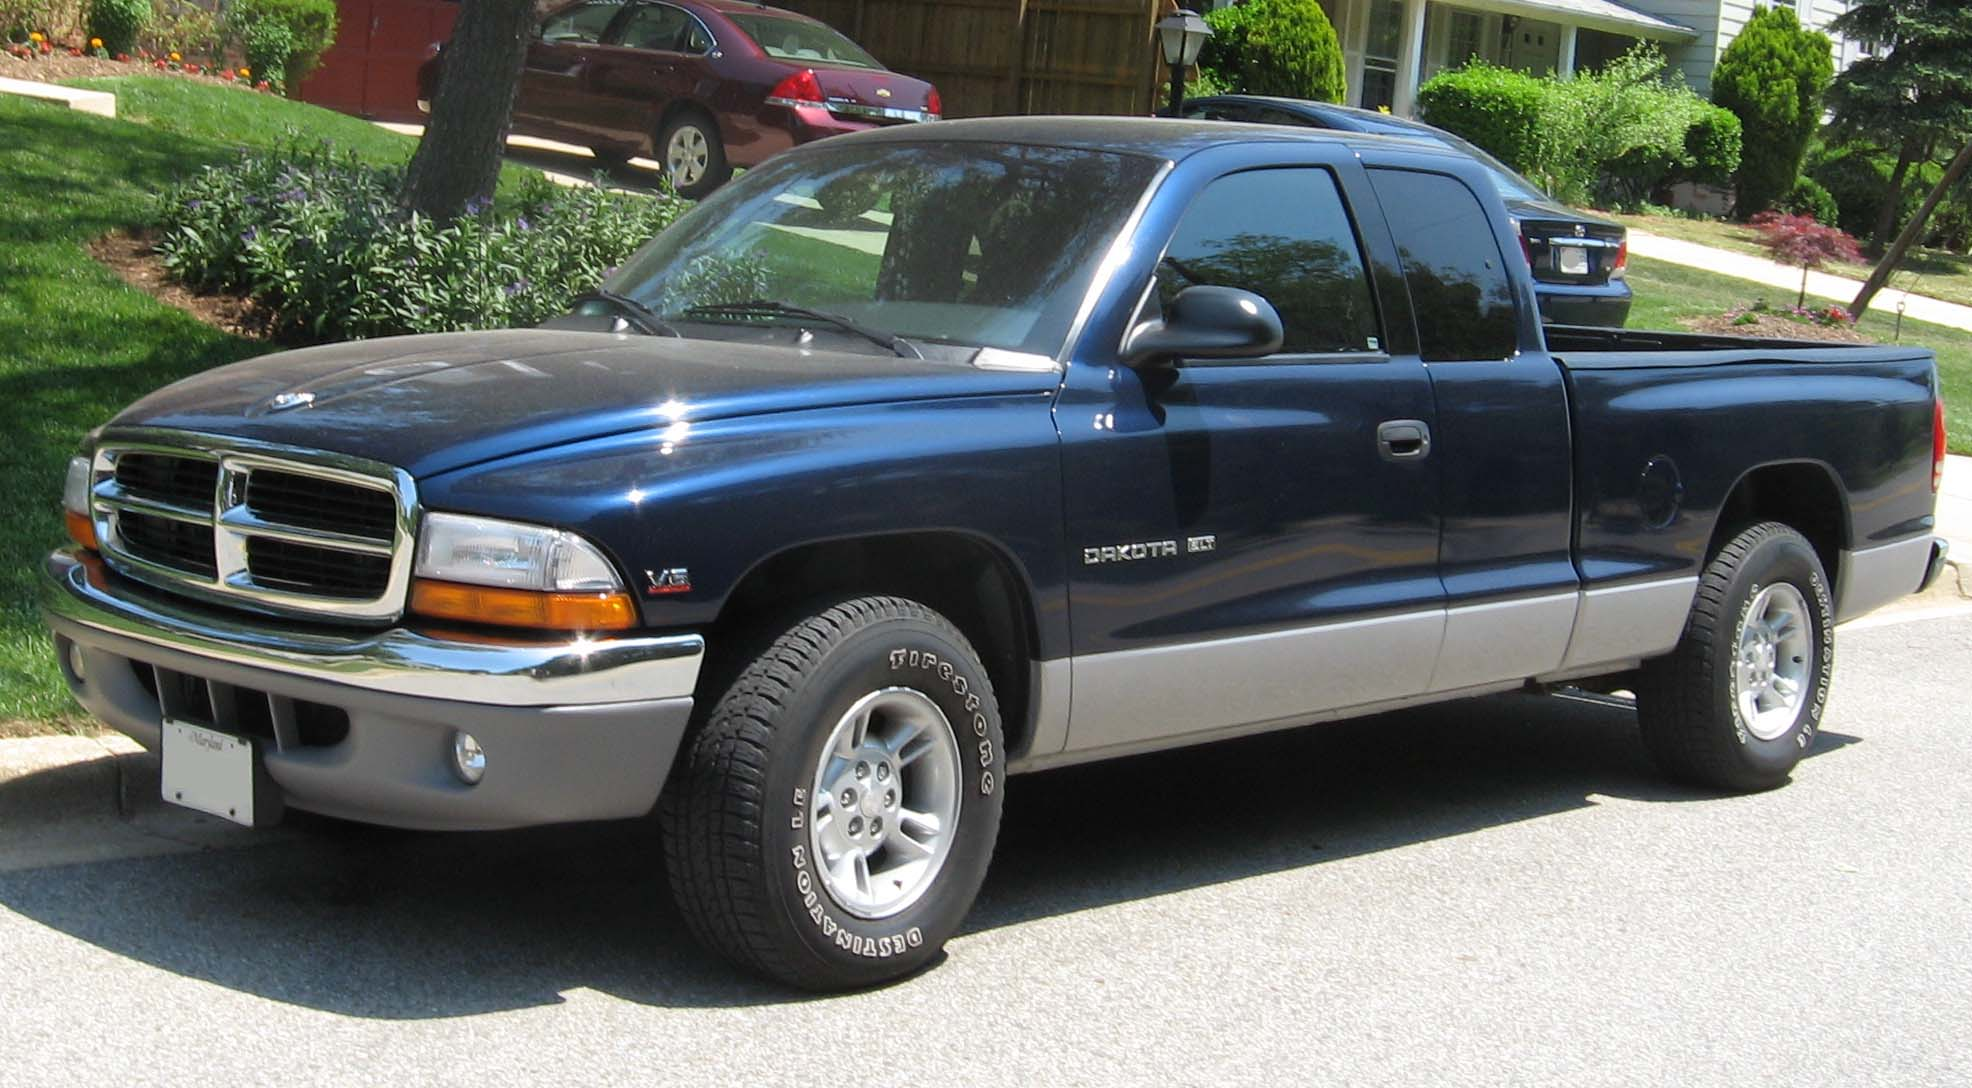 1997 Dodge Dakota #4 Dodge Dakota #4